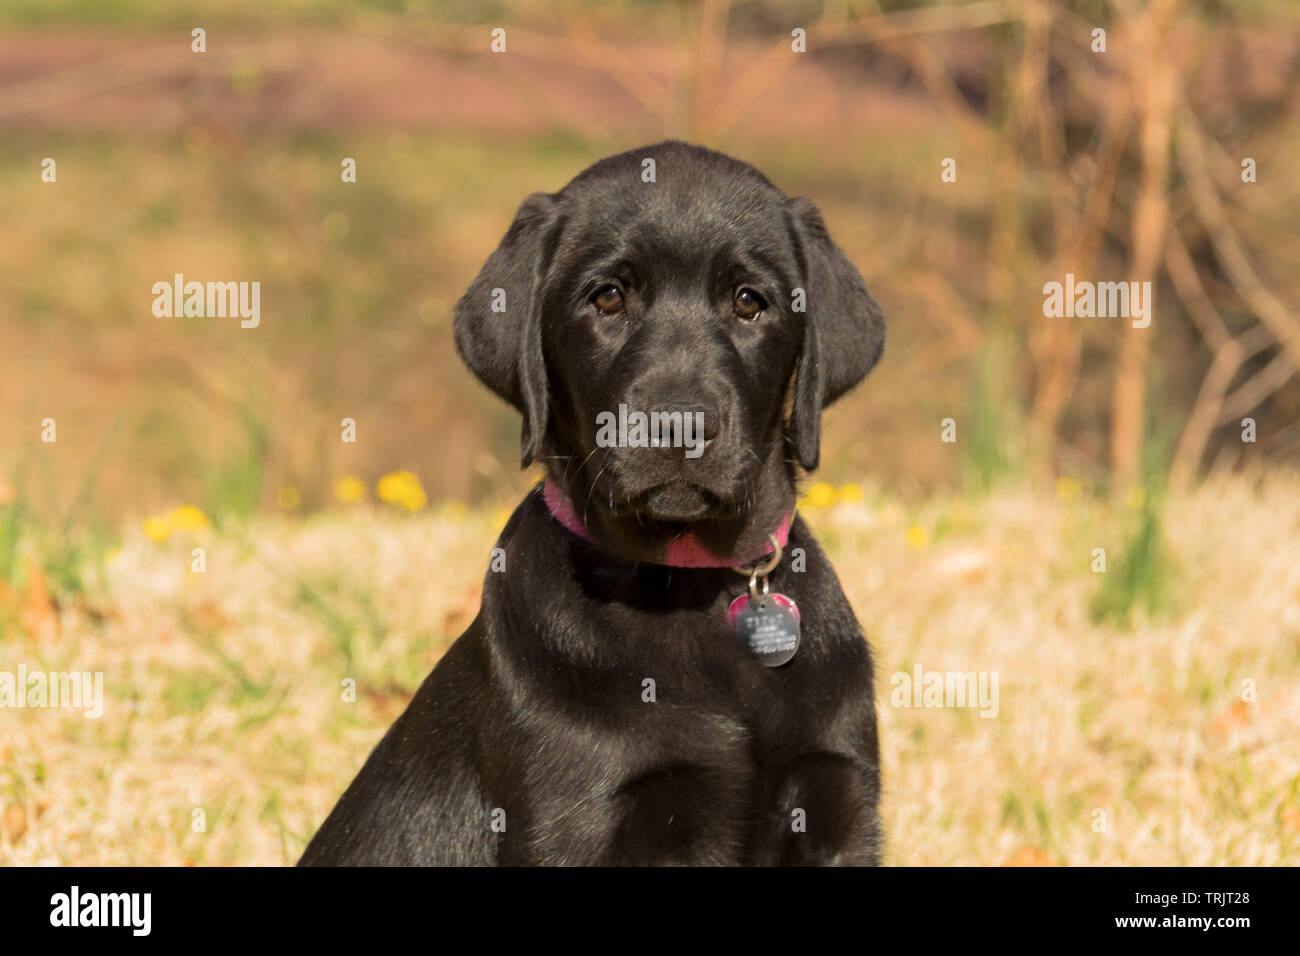 Black Labrador puppy. With his family-friendly reputation and incredible loyalty, it has made a popular family companion pet for years. - Stock Image